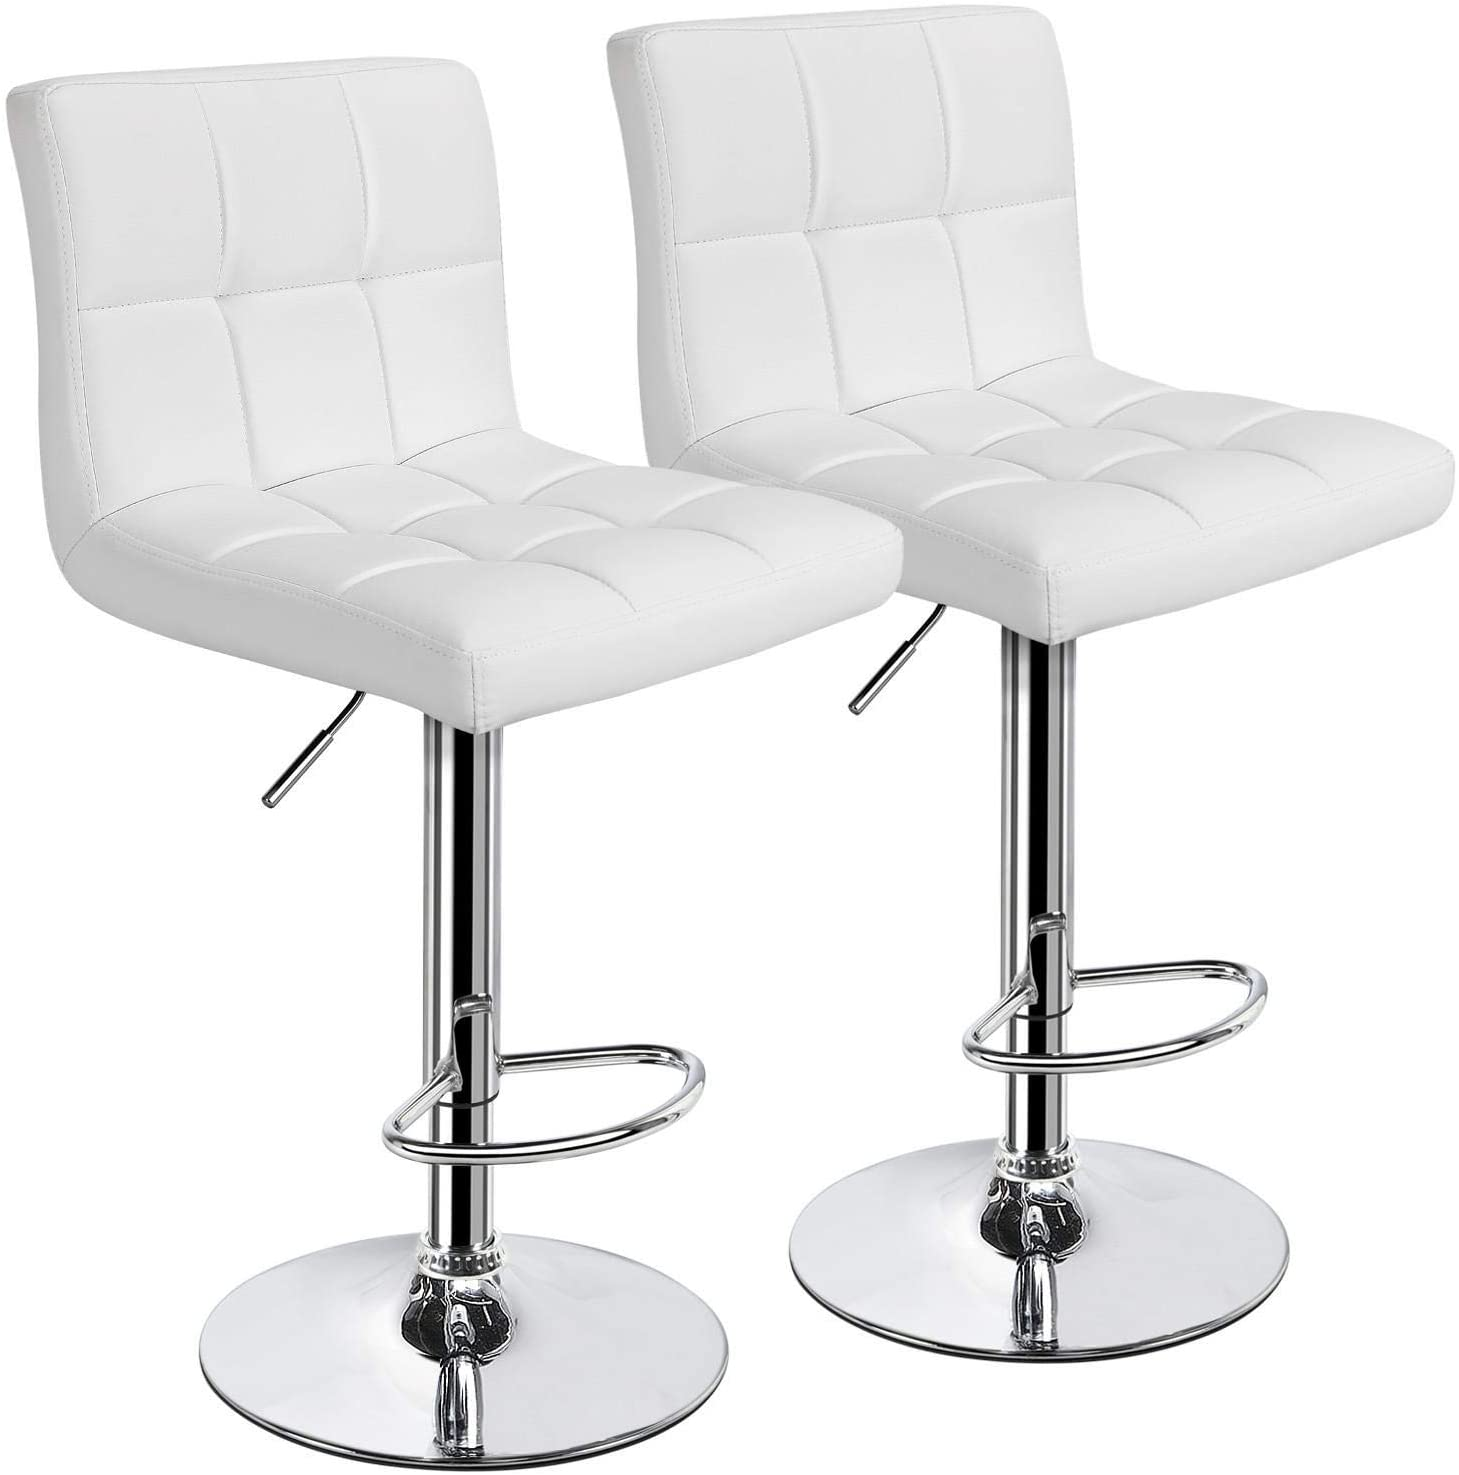 Yaheetech X-Large Bar Stools - Square PU Leather Adjustable Counter Height  Swivel Stool Armless Chairs Set of 8 with Bigger Base, White